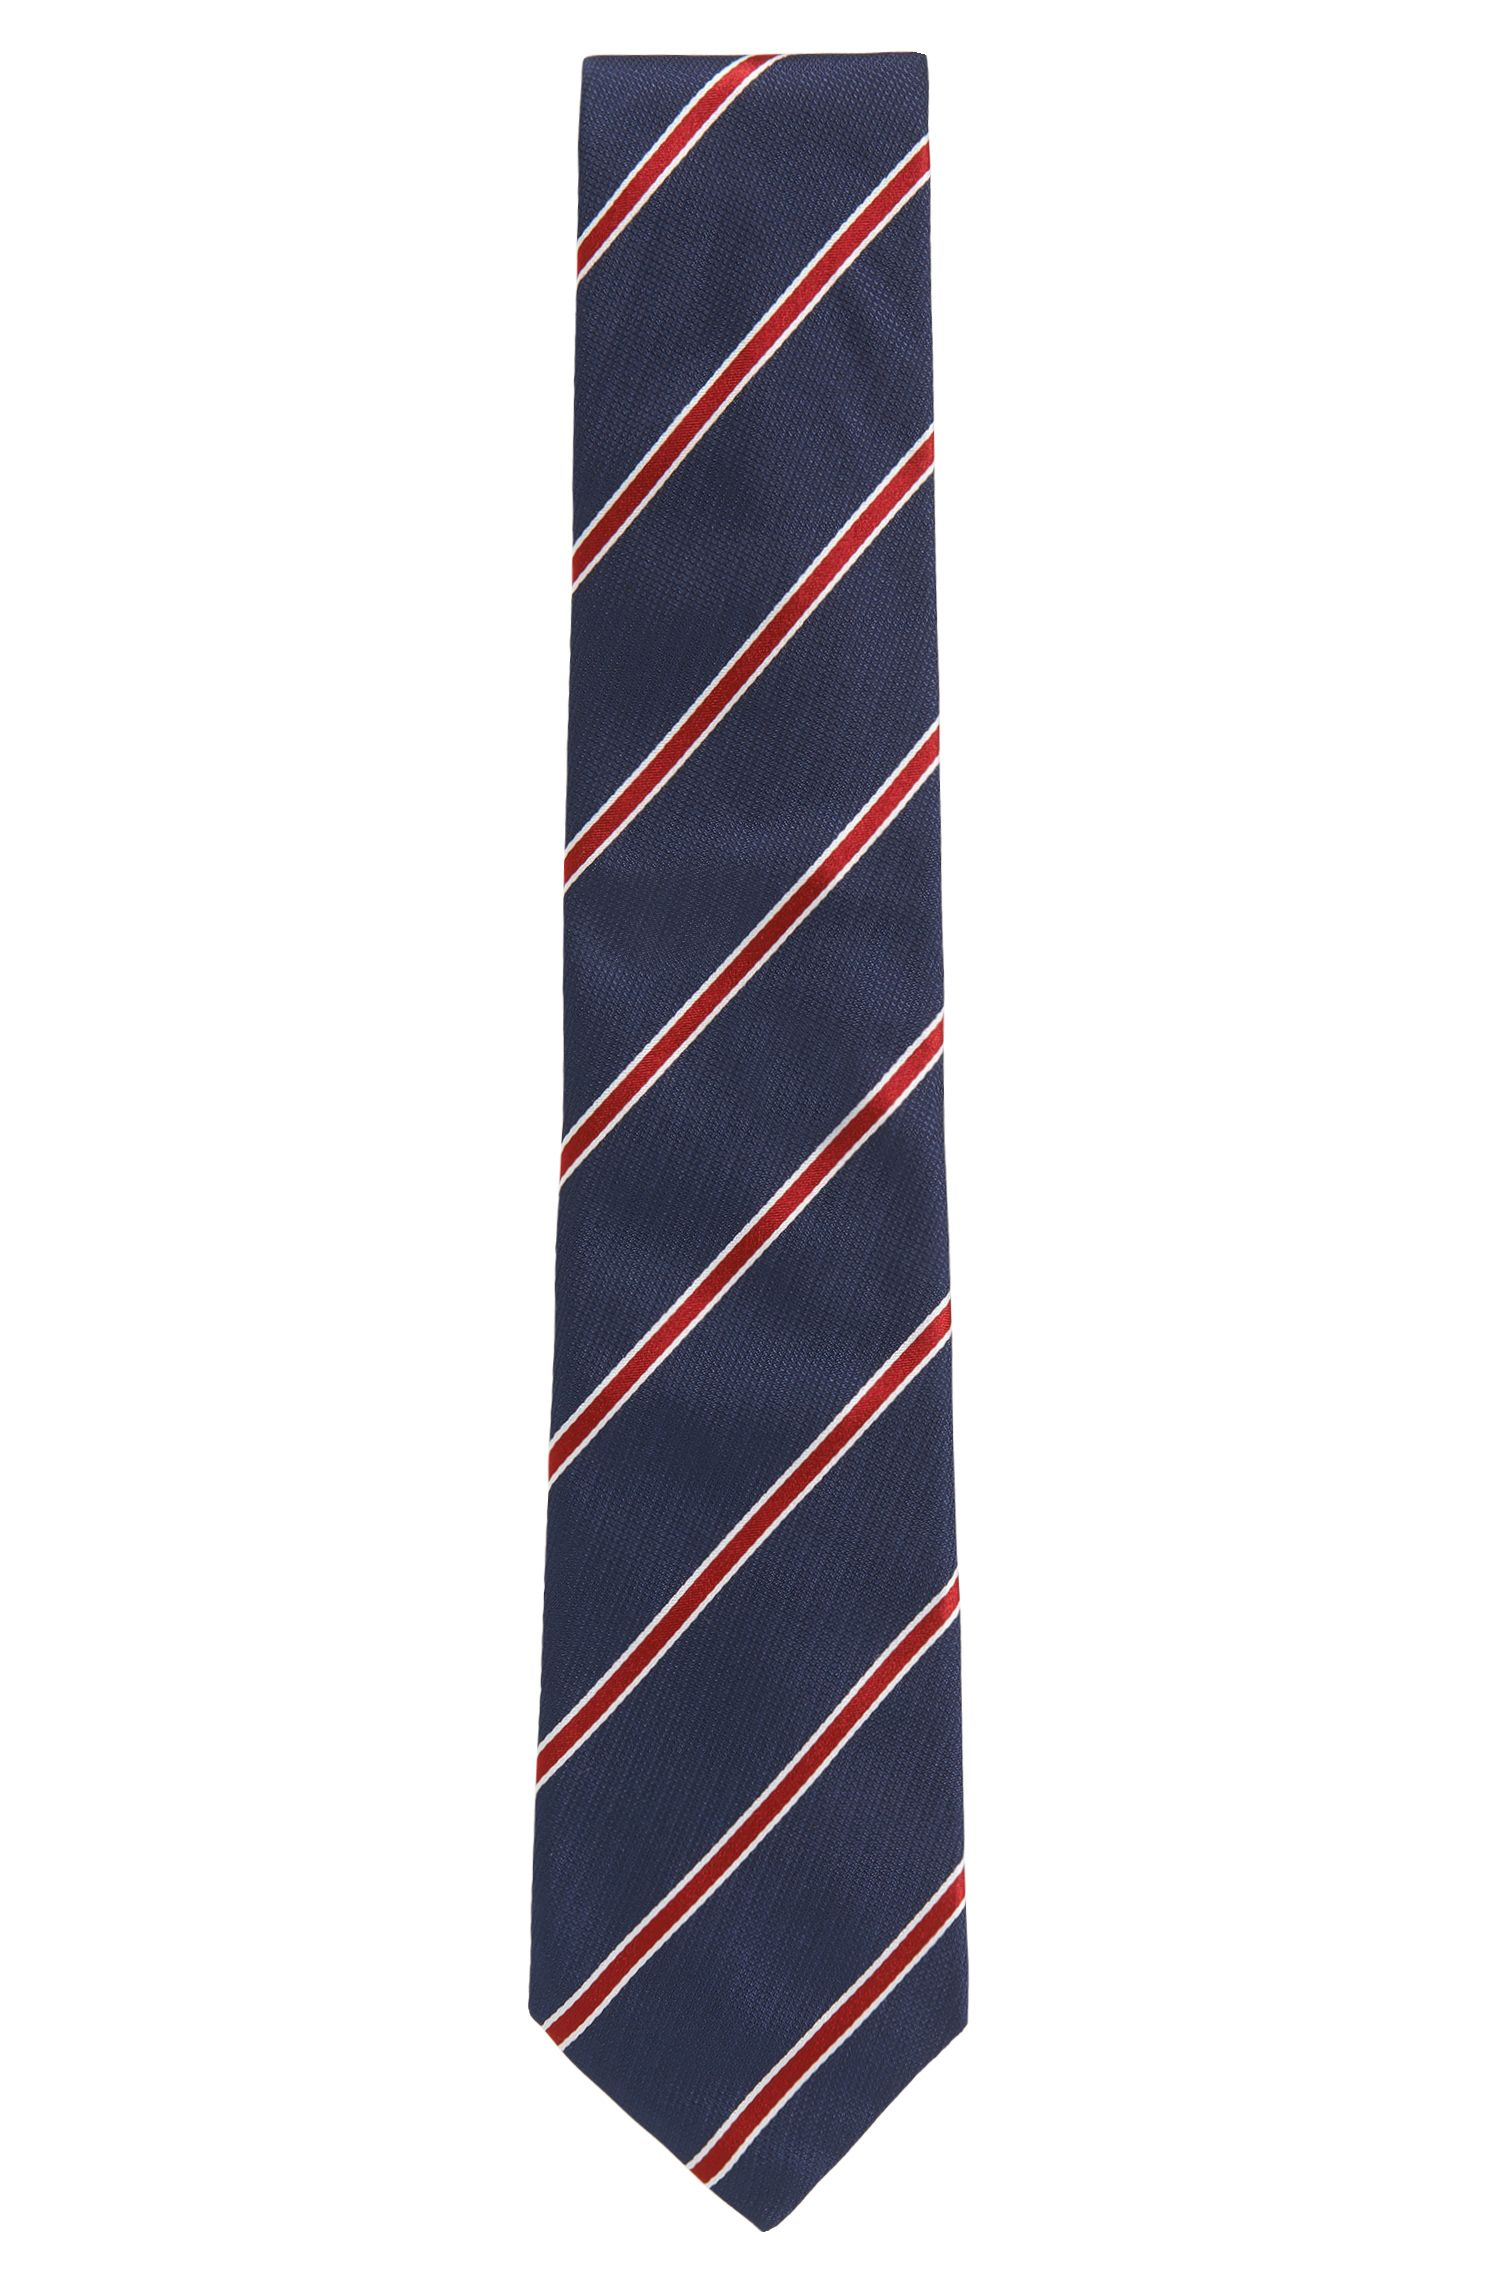 Yarn-dyed diagonal striped tie in silk jacquard